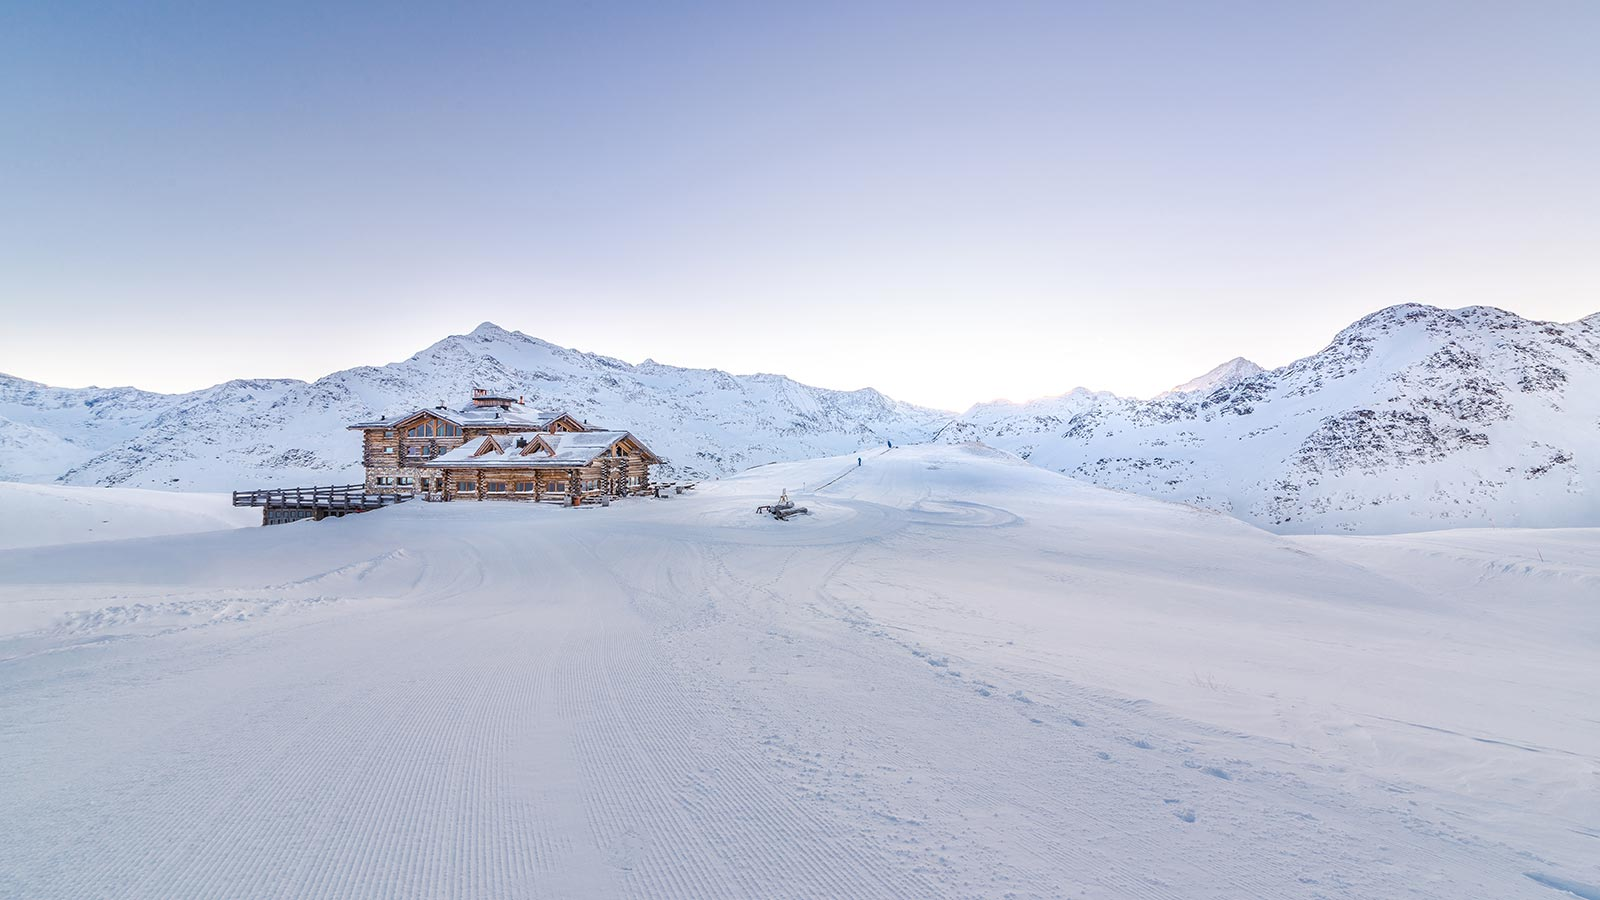 Mountain lodge on an idyllic snow-covered landscape